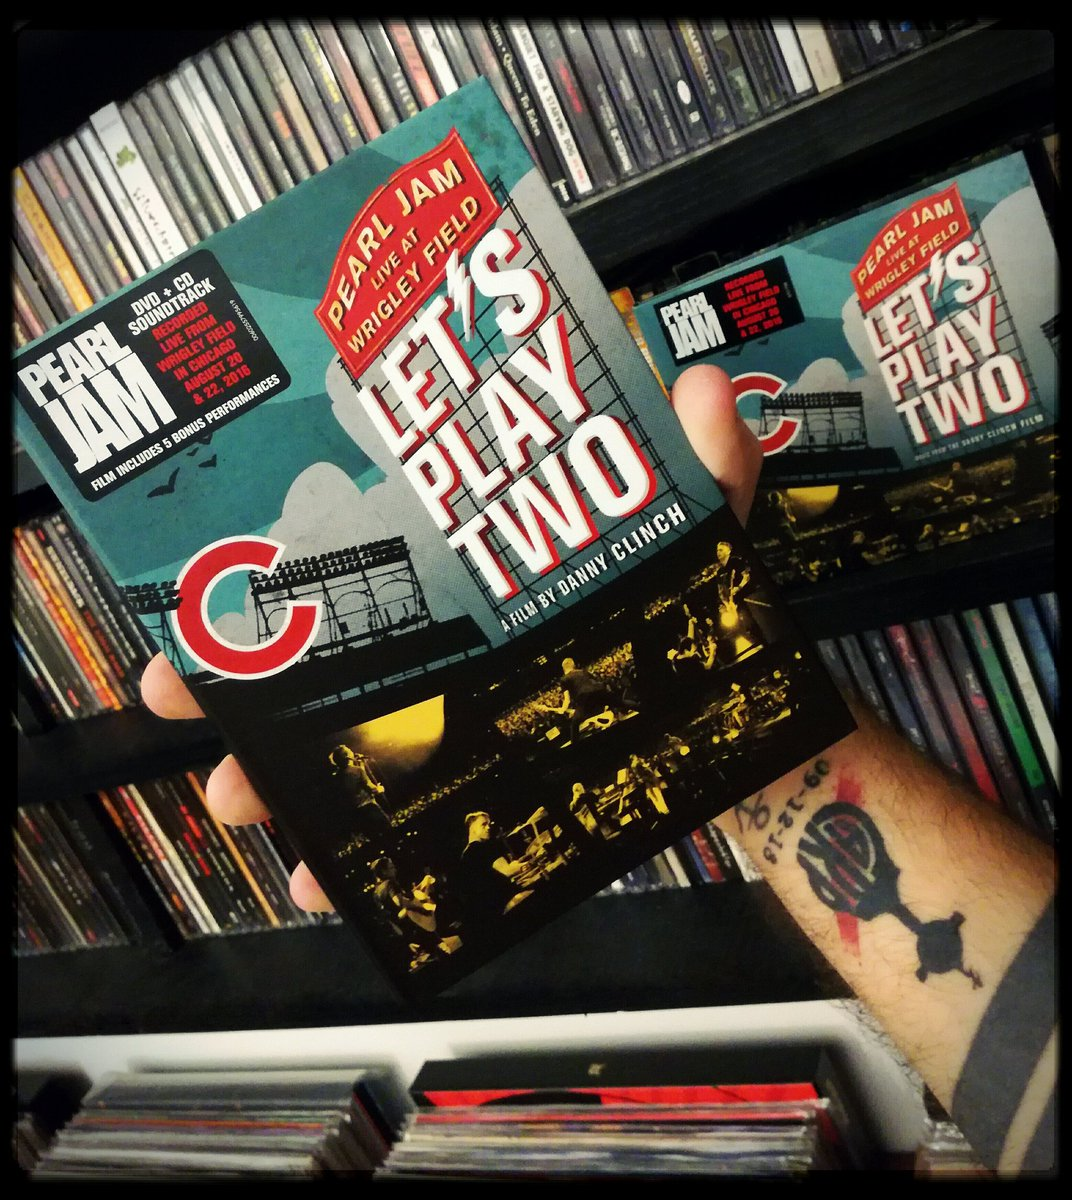 @PearlJam #NowPlaying #PearlJam Let's Play Two #Dvd + #Cd #Music #CdCollection pic.twitter.com/TurPdNlpda